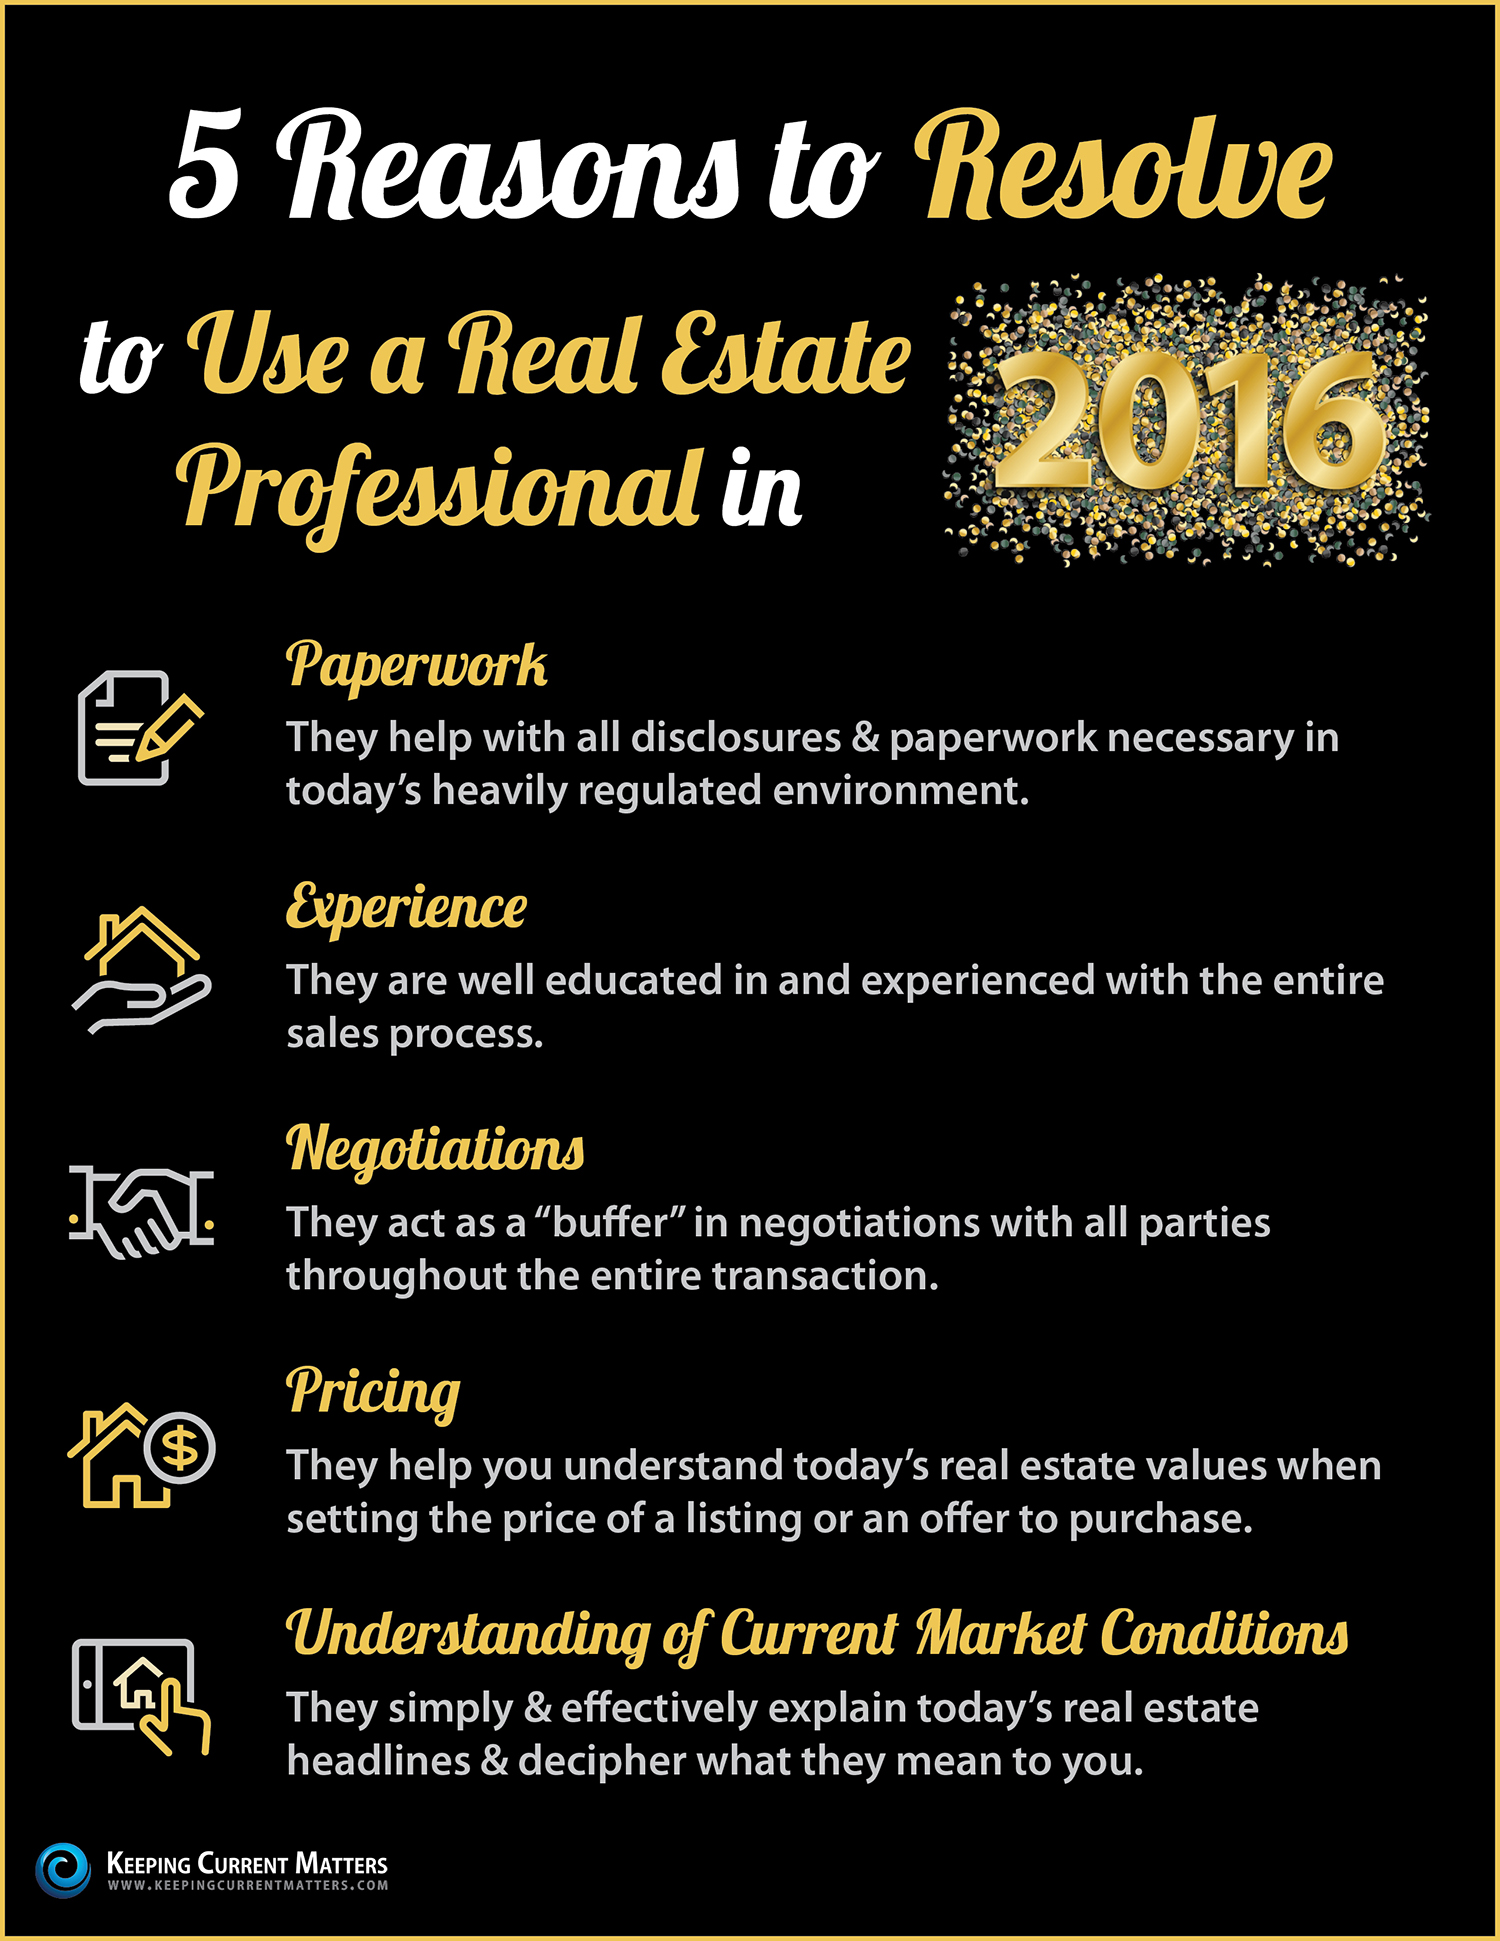 Resolve to Use a Real Estate Professional in 2016 [INFOGRAPHIC] | Keeping Current Matters